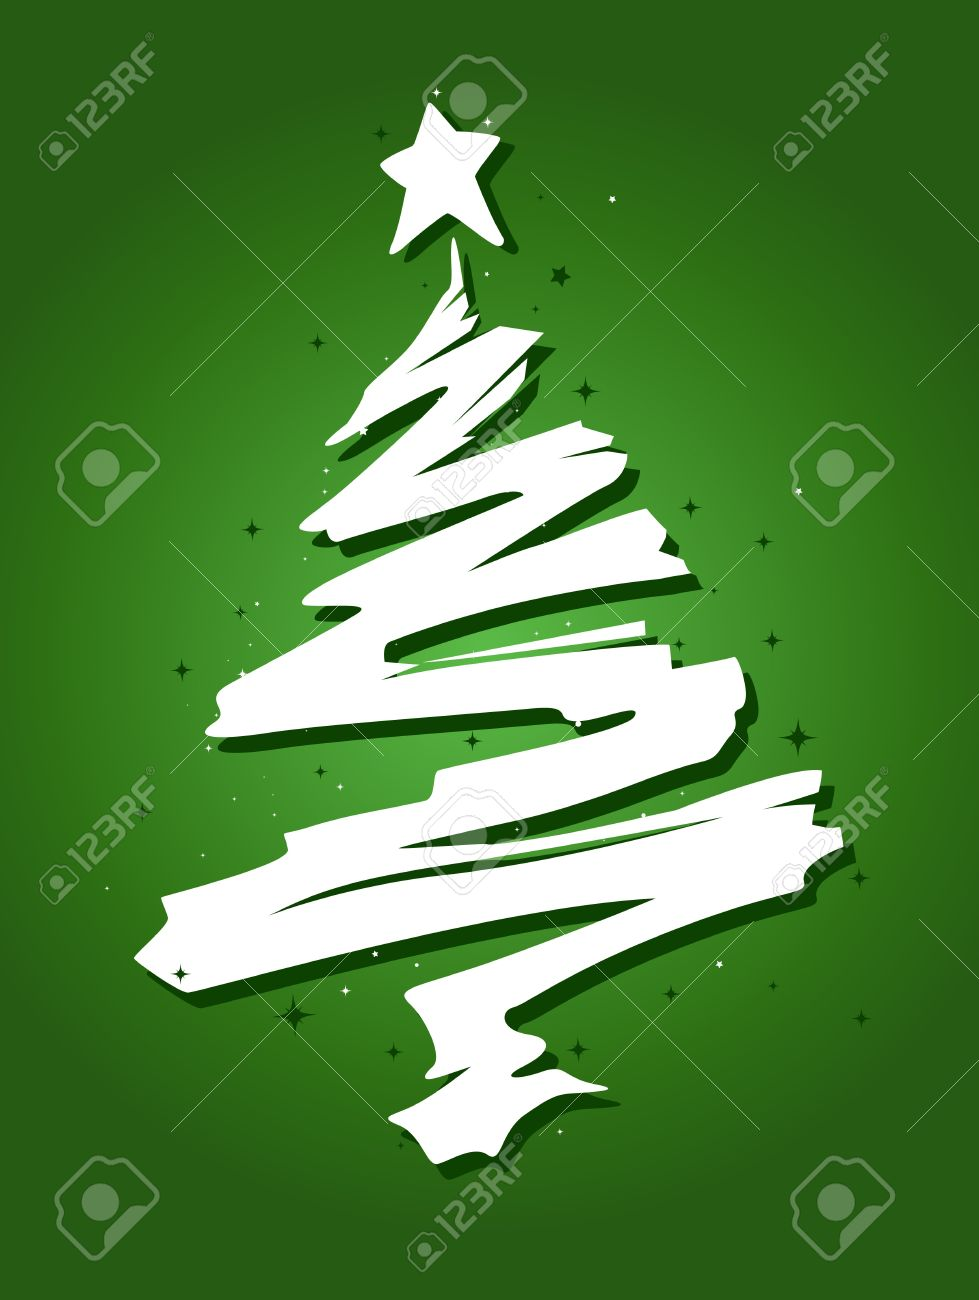 christmas tree design featuring a trail of paint shaped like